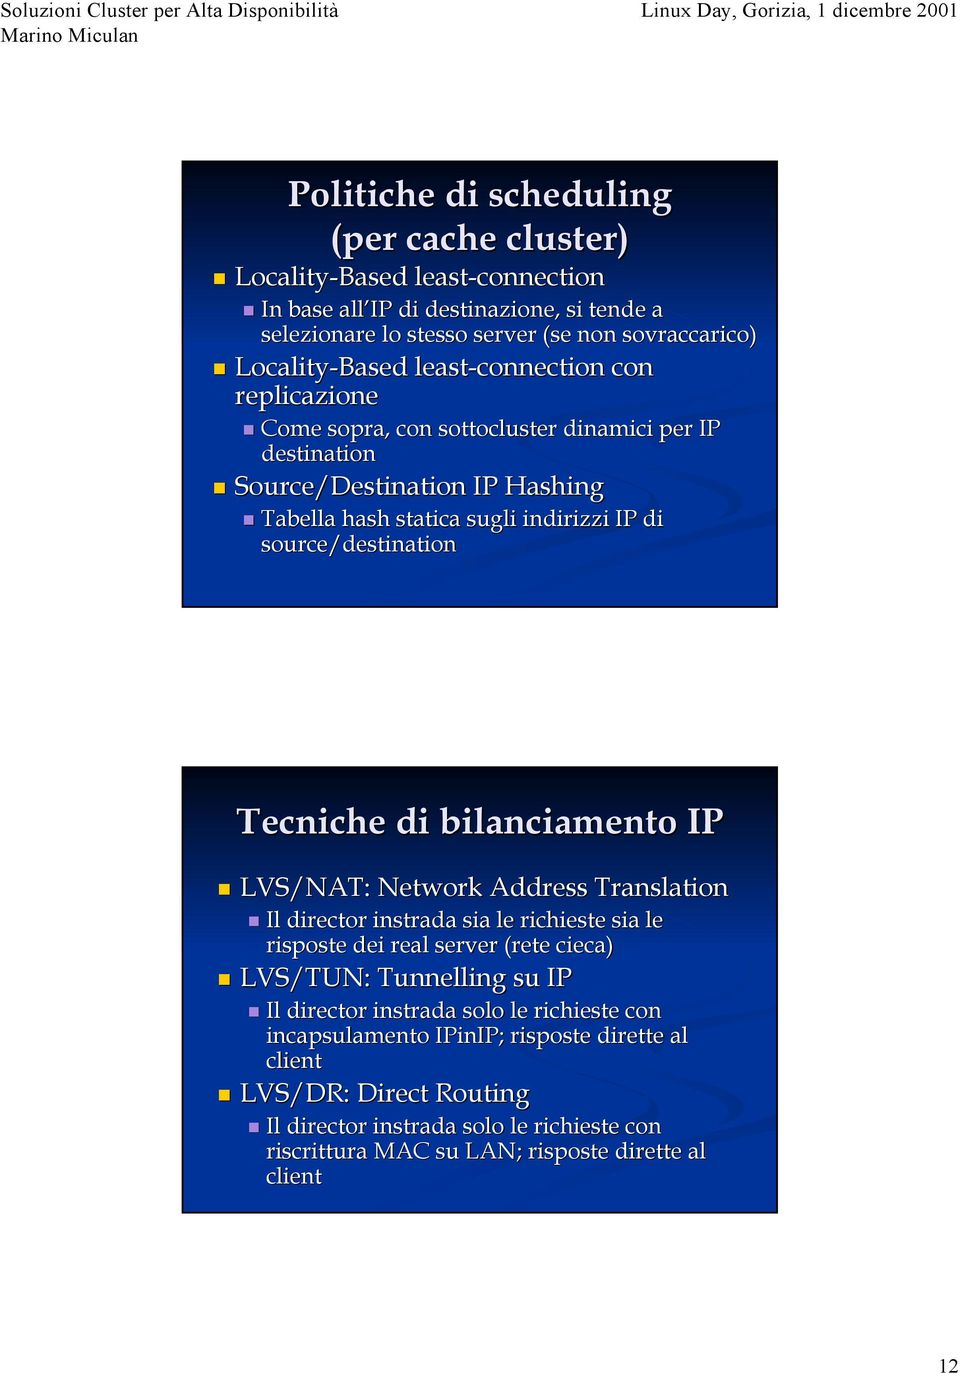 Tecniche di bilanciamento IP LVS/NAT: Network Address Translation Il director instrada sia le richieste sia le risposte dei real server (rete cieca) LVS/TUN: Tunnelling su IP Il director